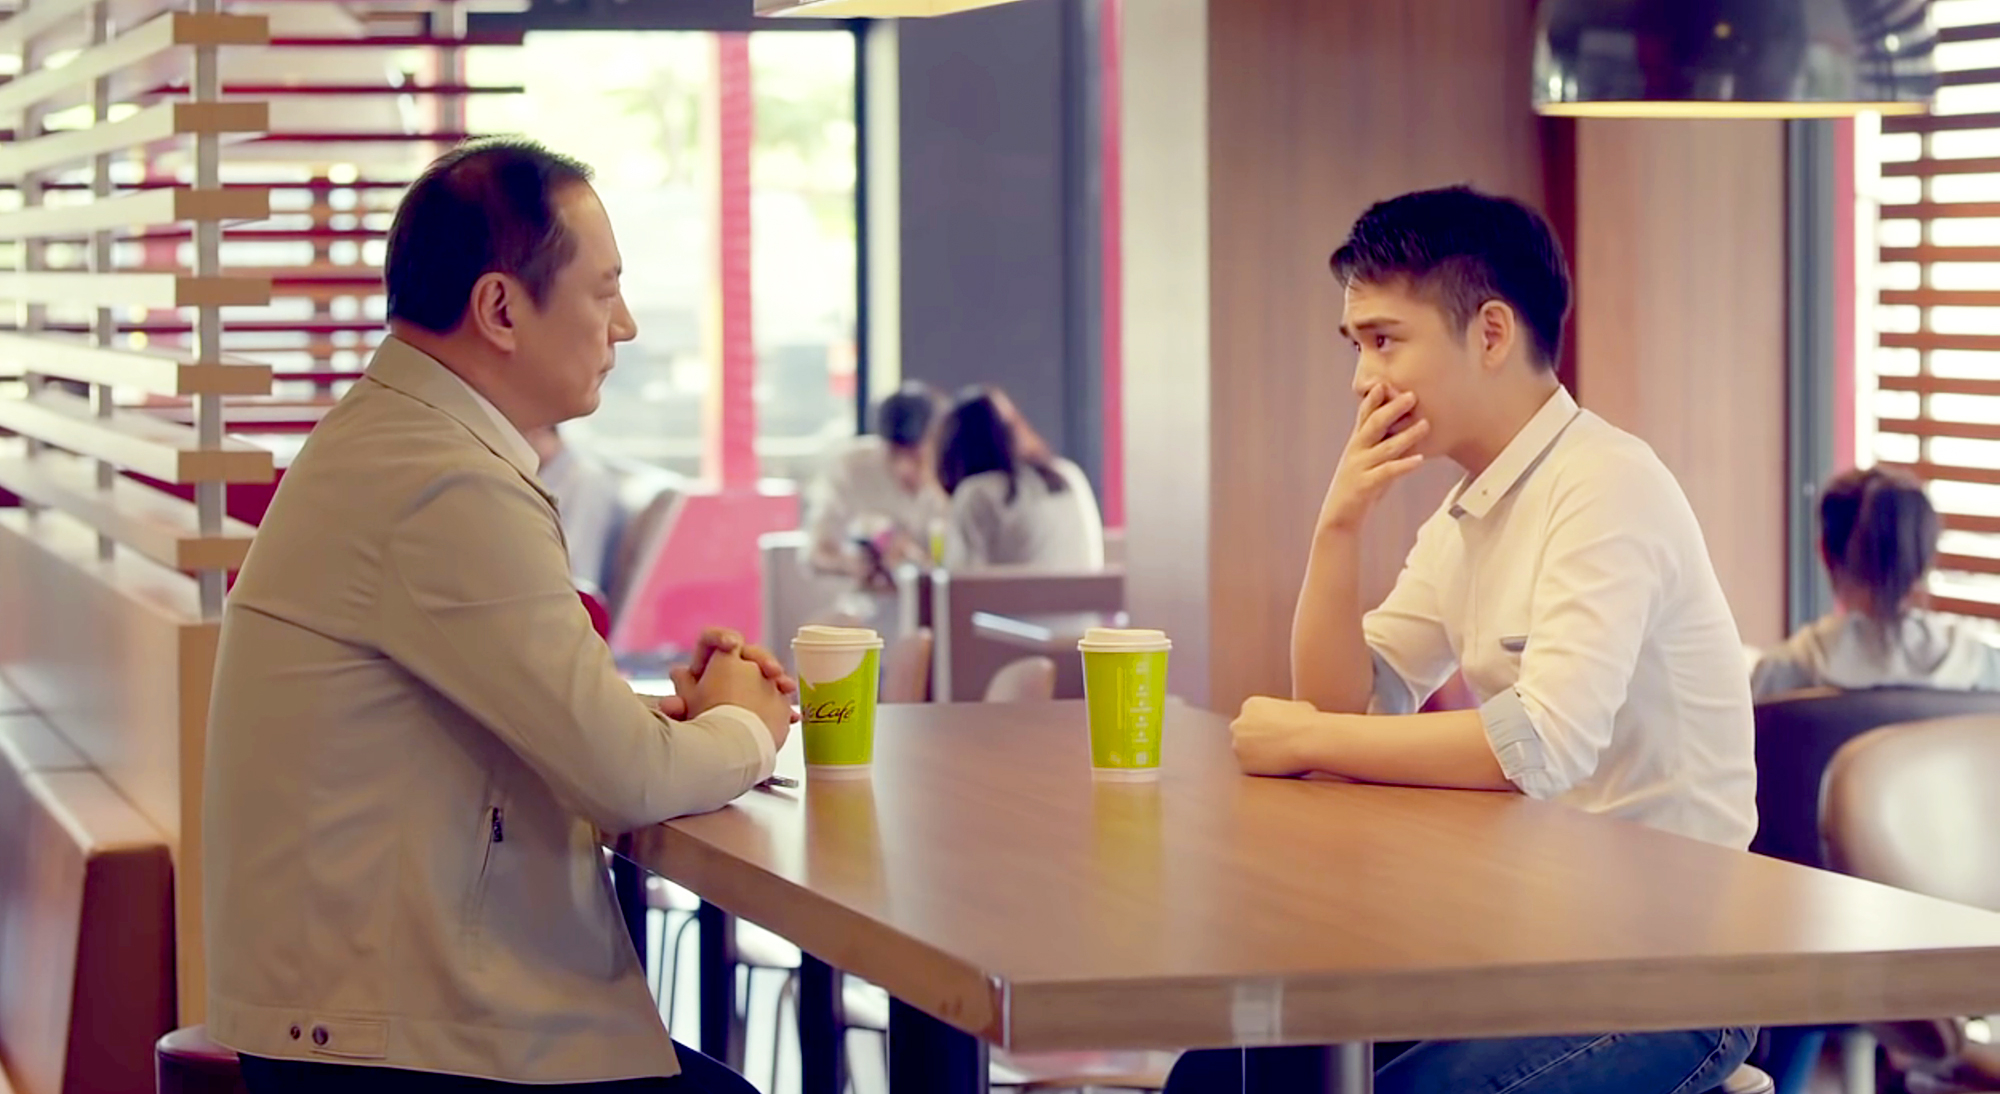 Son Comes Out as Gay to His Dad in Taiwanese McDonald's Ad